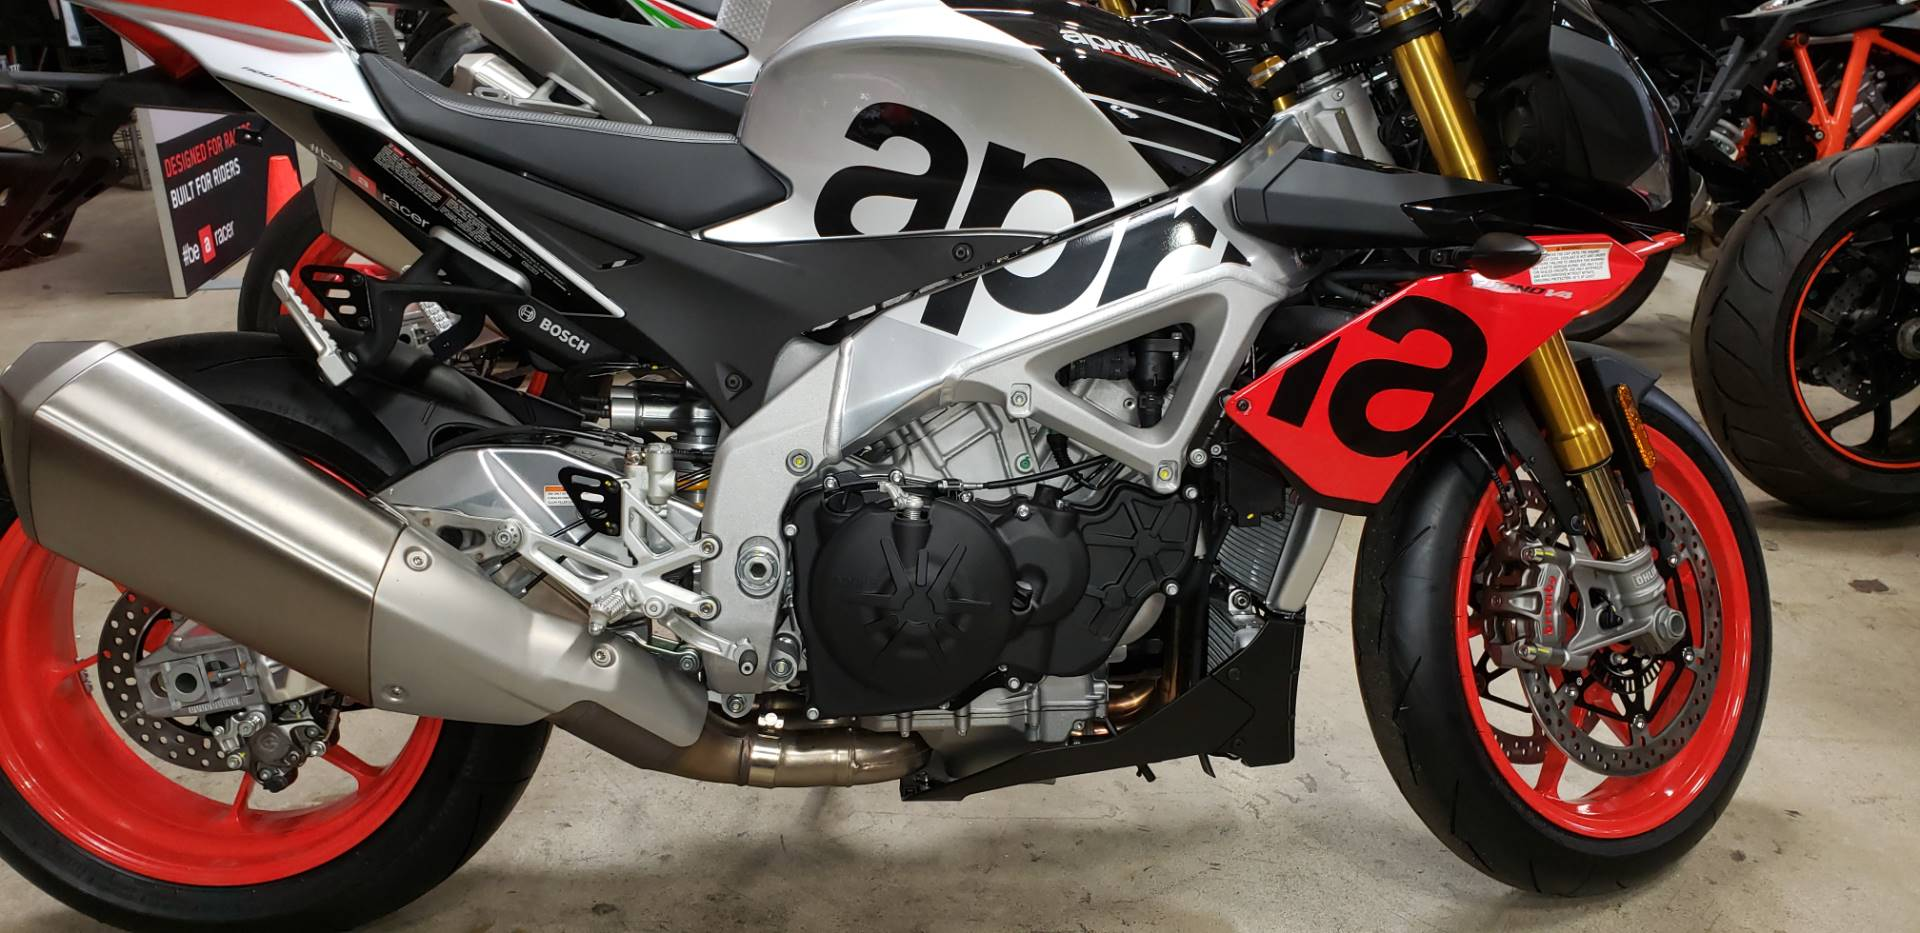 2019 Aprilia TUONO V4 1100 FACTORY in Orange, California - Photo 1